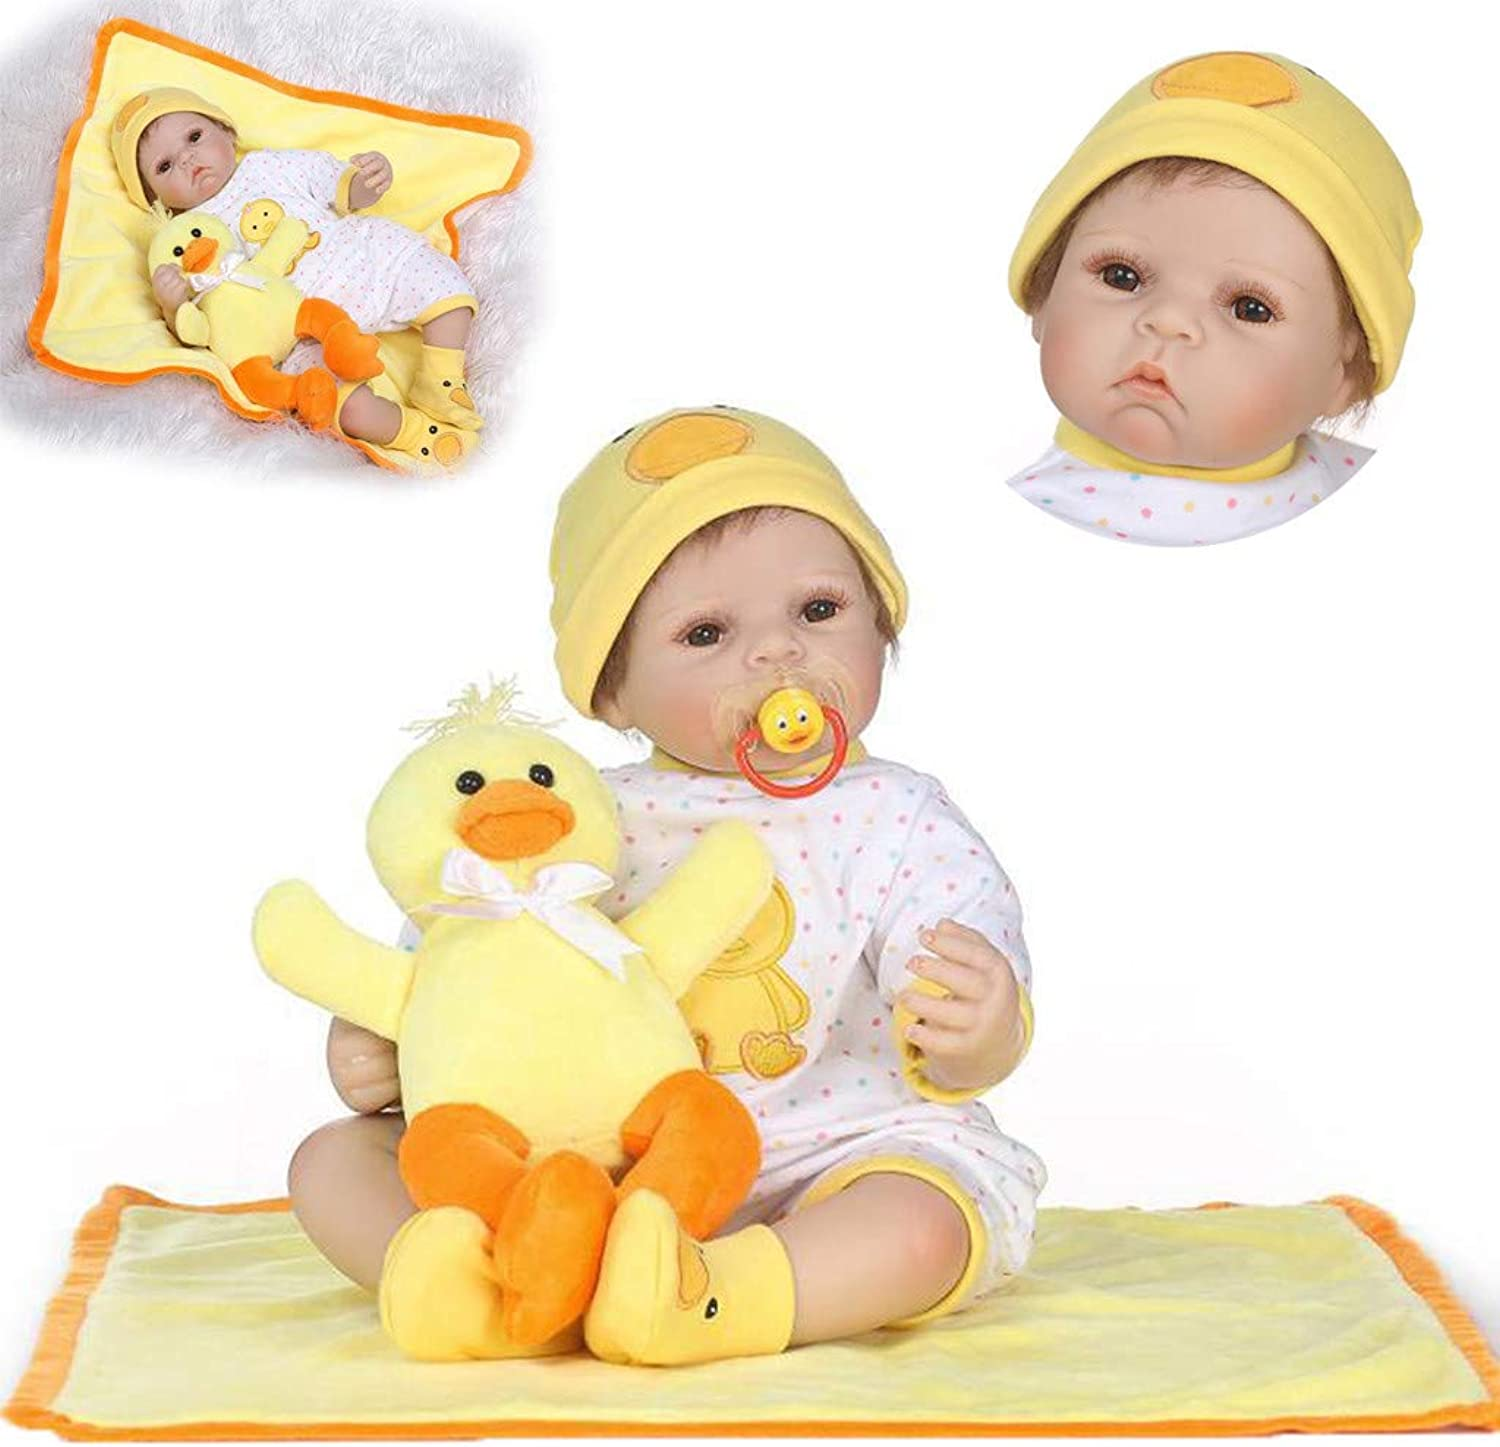 Bescita 55cm Cute Girl Dolls And Little Yellow Duck American Play Dolls Lifelike Reborn Baby Doll Handmade Silicone Vinyl Newborn Doll Kids Playmate Birthday Gift